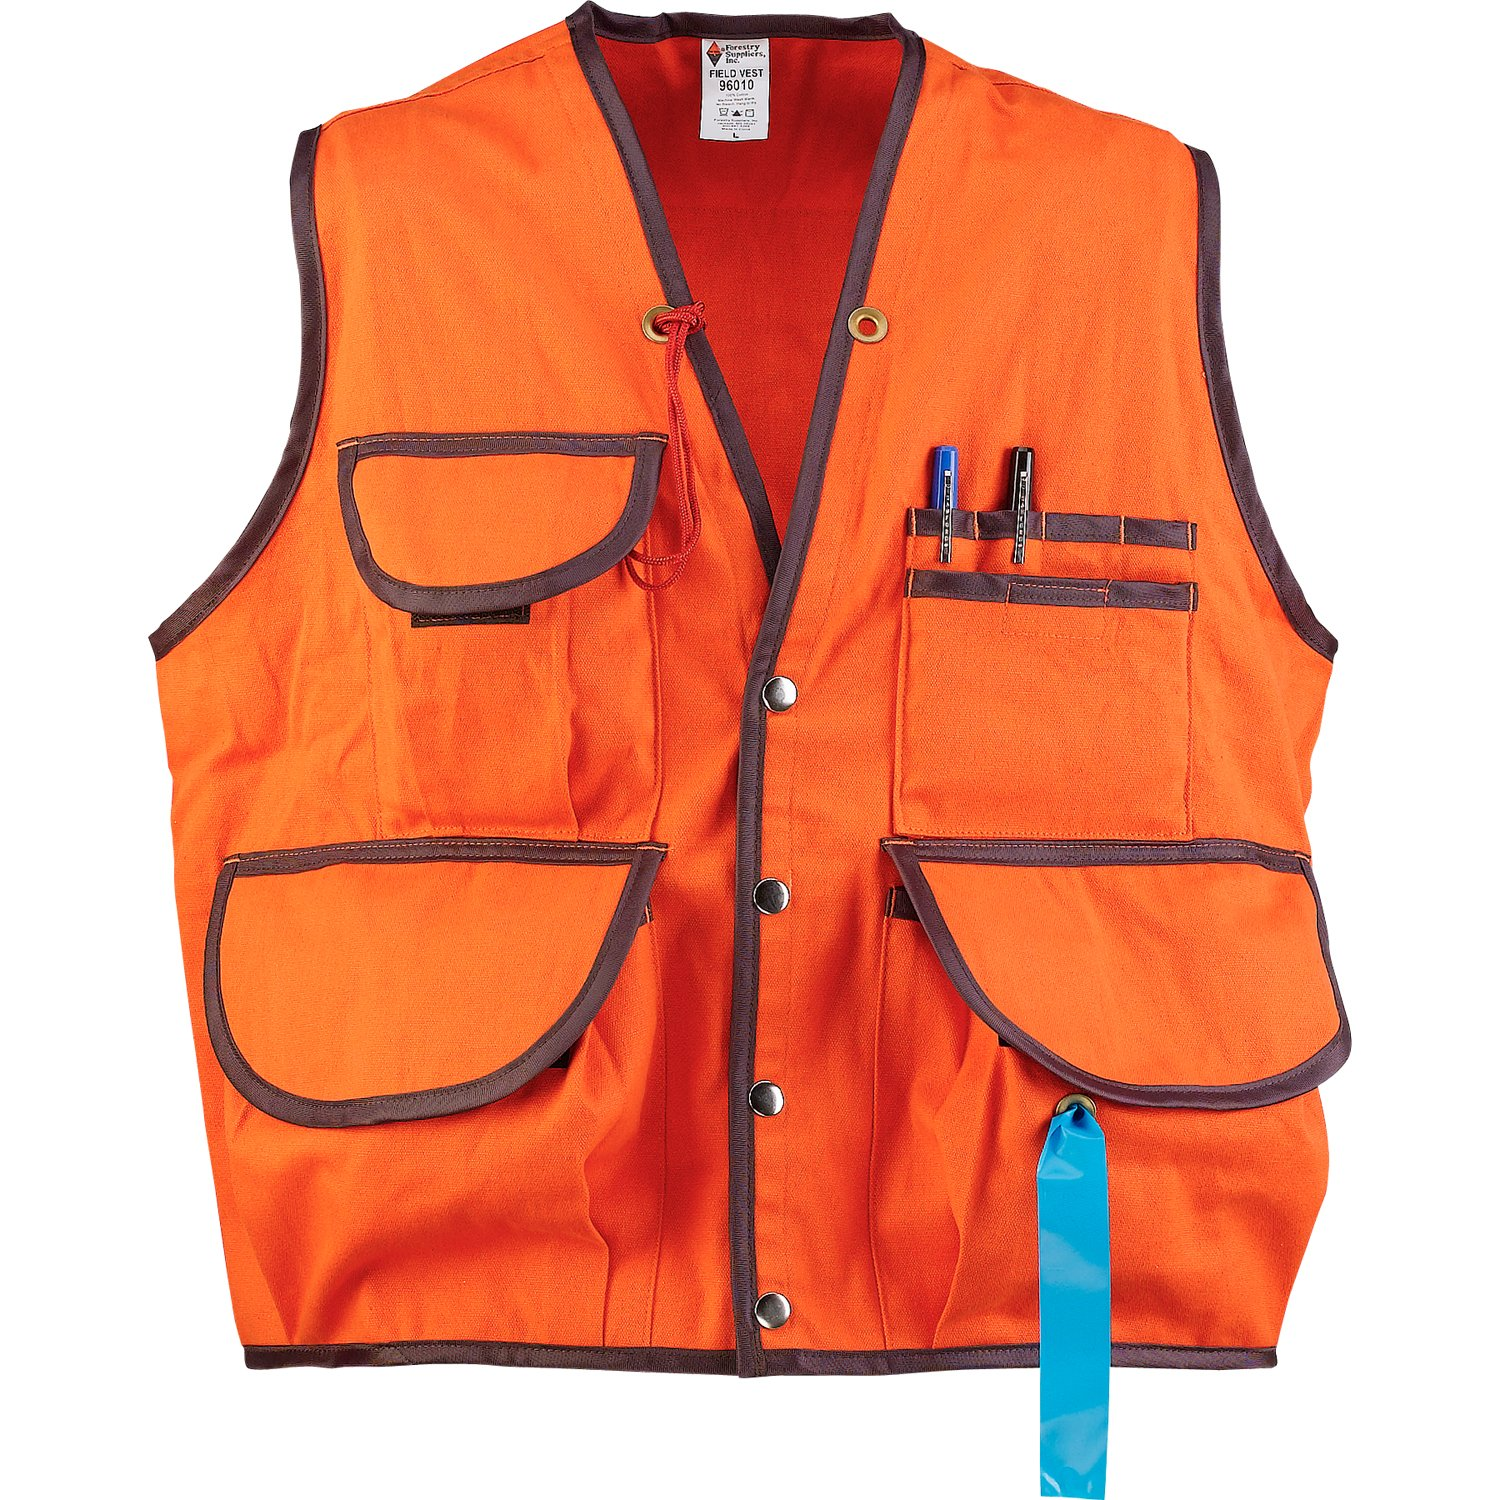 JIM-GEM Pro 10-Pocket Cotton Army Duck Cruiser Vest, X-Large, 43-46, Orange by Jim Gem (Image #1)